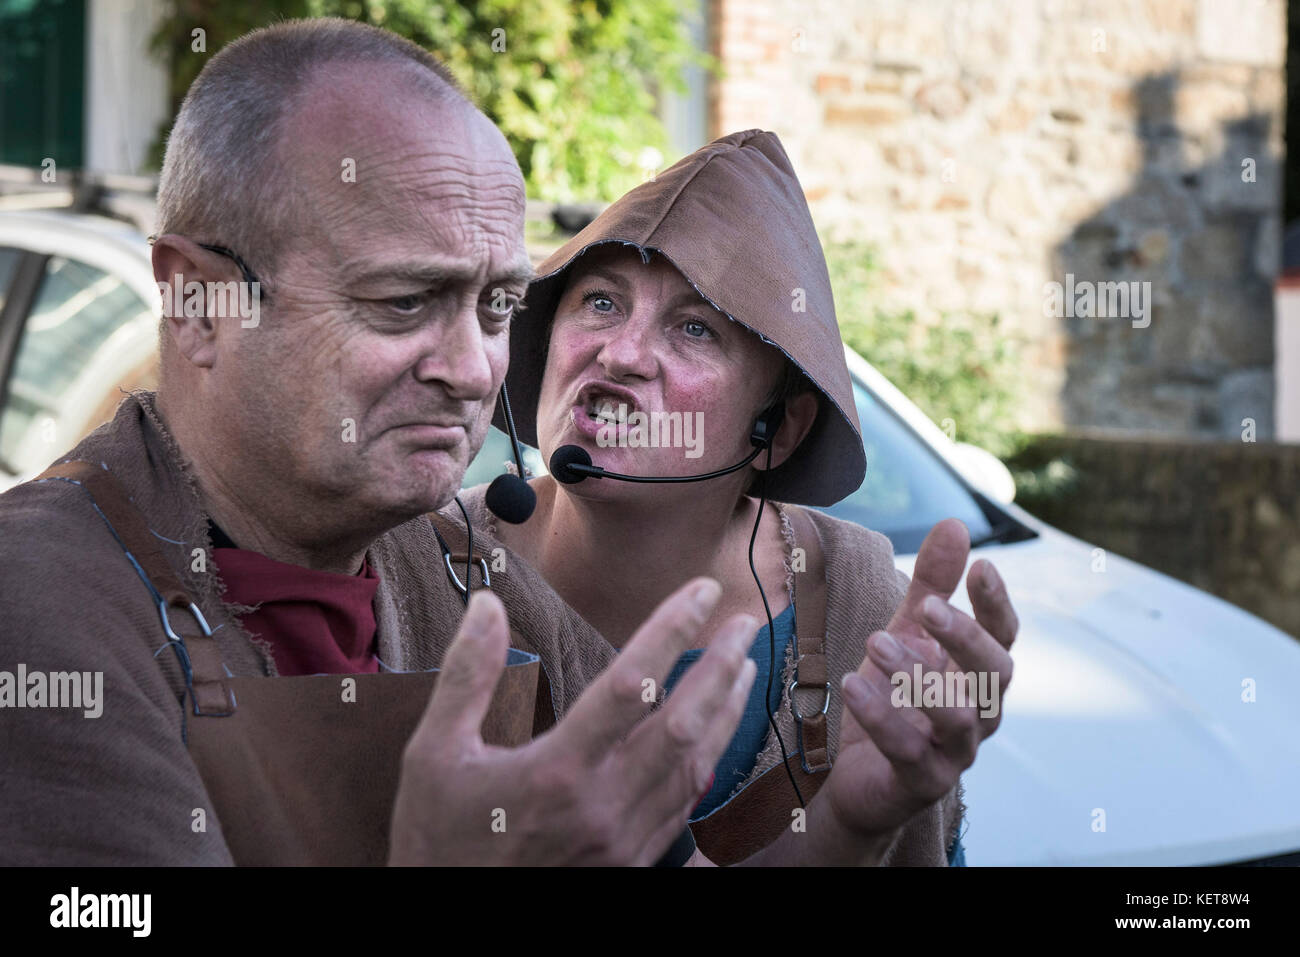 The Ordinalia - Cornish Mystery Plays performed during the Penryn Kemeneth a two day heritage festival at Penryn - Stock Image